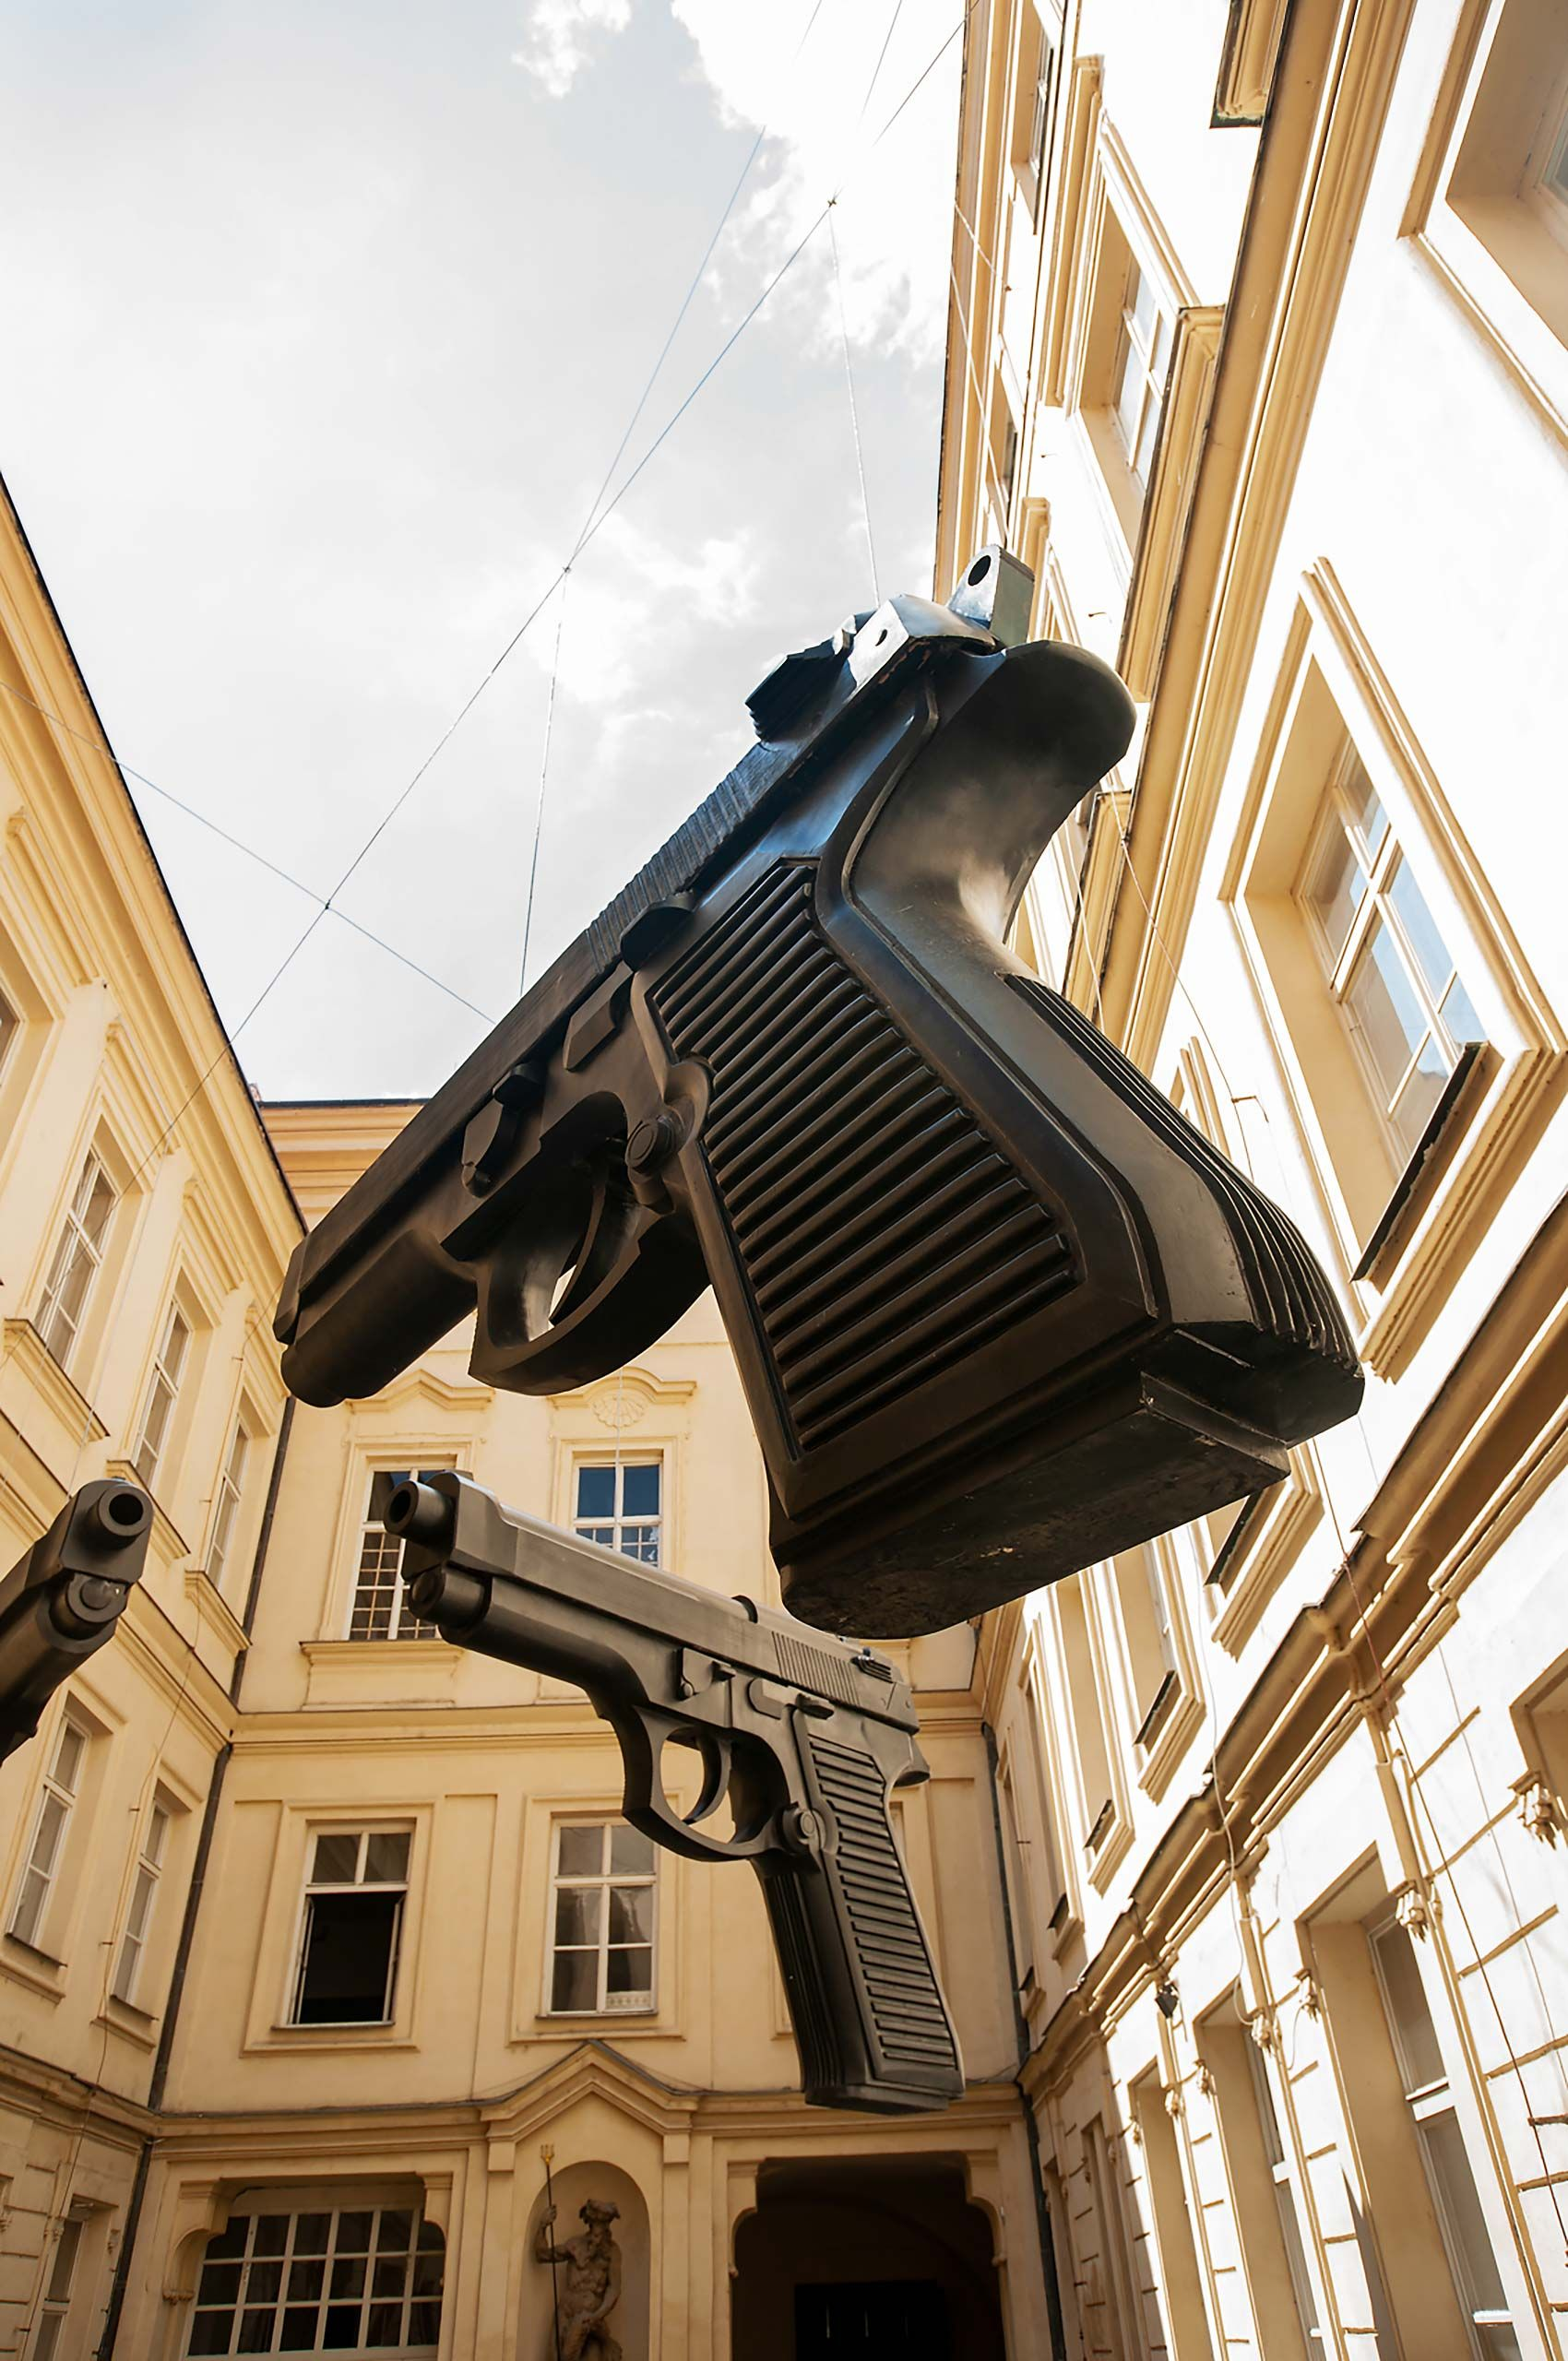 Graint Gun handgun art Berlin Germany